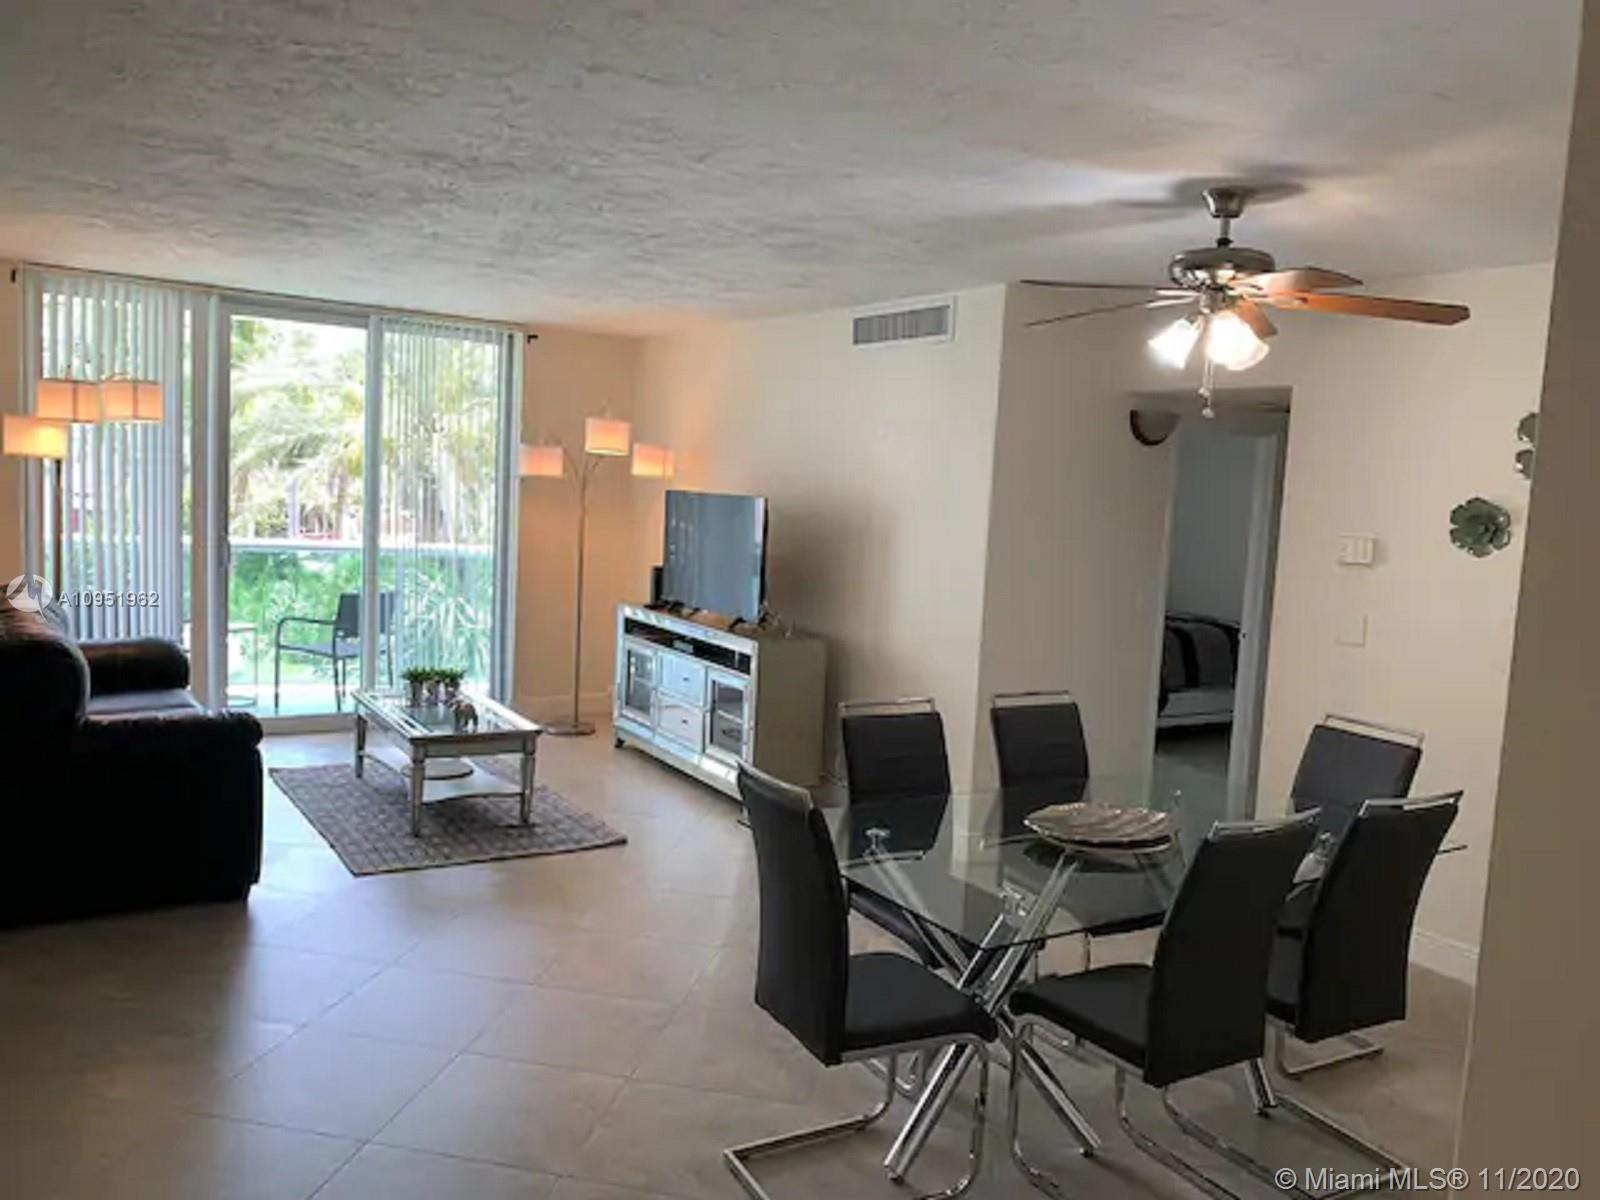 Mid-Luxury High Rise on Beautiful Hollywood Beach FL, 1BR/1BA. Building features 2 heated pools, 2 f